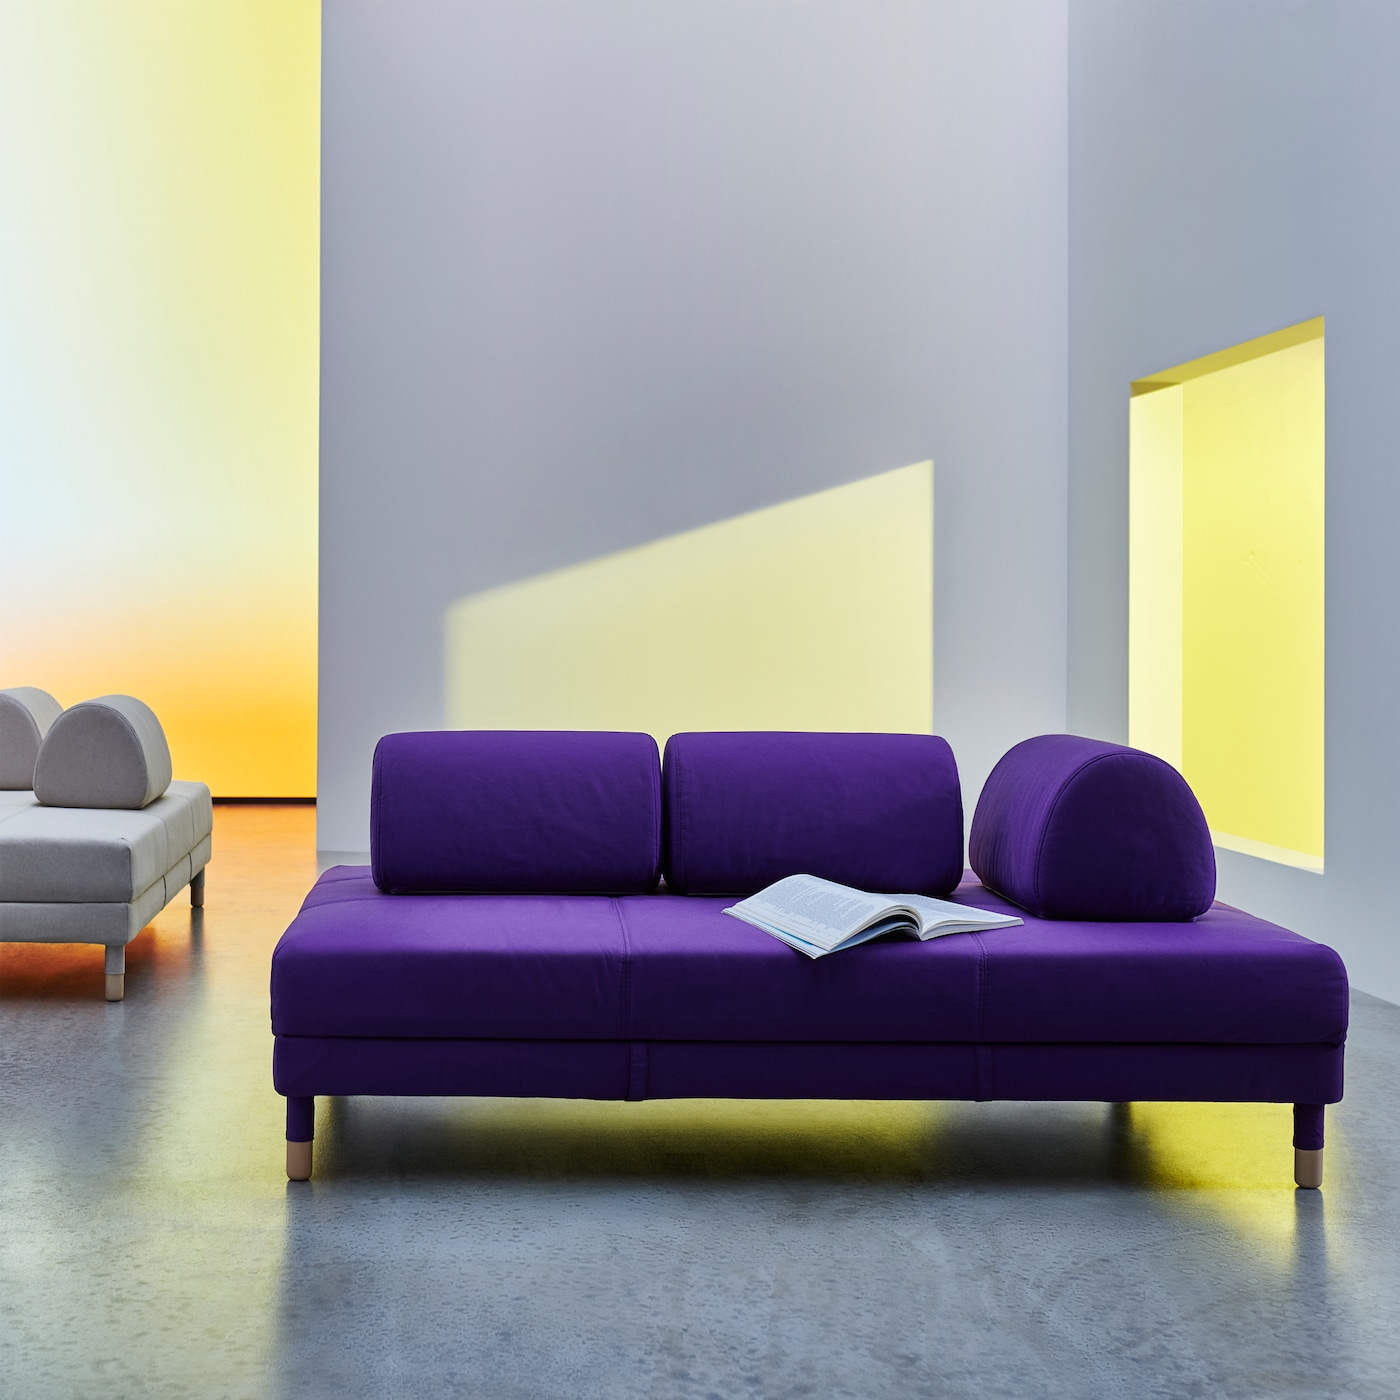 A purple FLOTTEBO sofa-bed with minimalist design, clean lines and rounded, movable cushions to place as you wish.